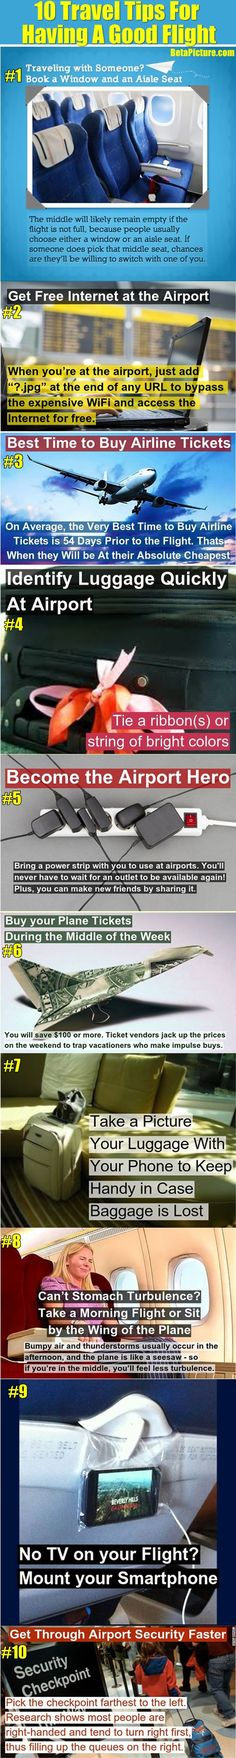 Helpful Life Hack Tips, Let's Make Life Great Again! 10 Travel Tips That You Must Know To Have A Good Flight. Loving that power strip idea! Such a good Travel Tips That You Must Know To Have A Good Flight. Loving that power strip idea! Travel Info, Travel Packing, Time Travel, Places To Travel, Travel Destinations, Travel Tips, Travel Hacks, Packing Tips, Travelling Tips